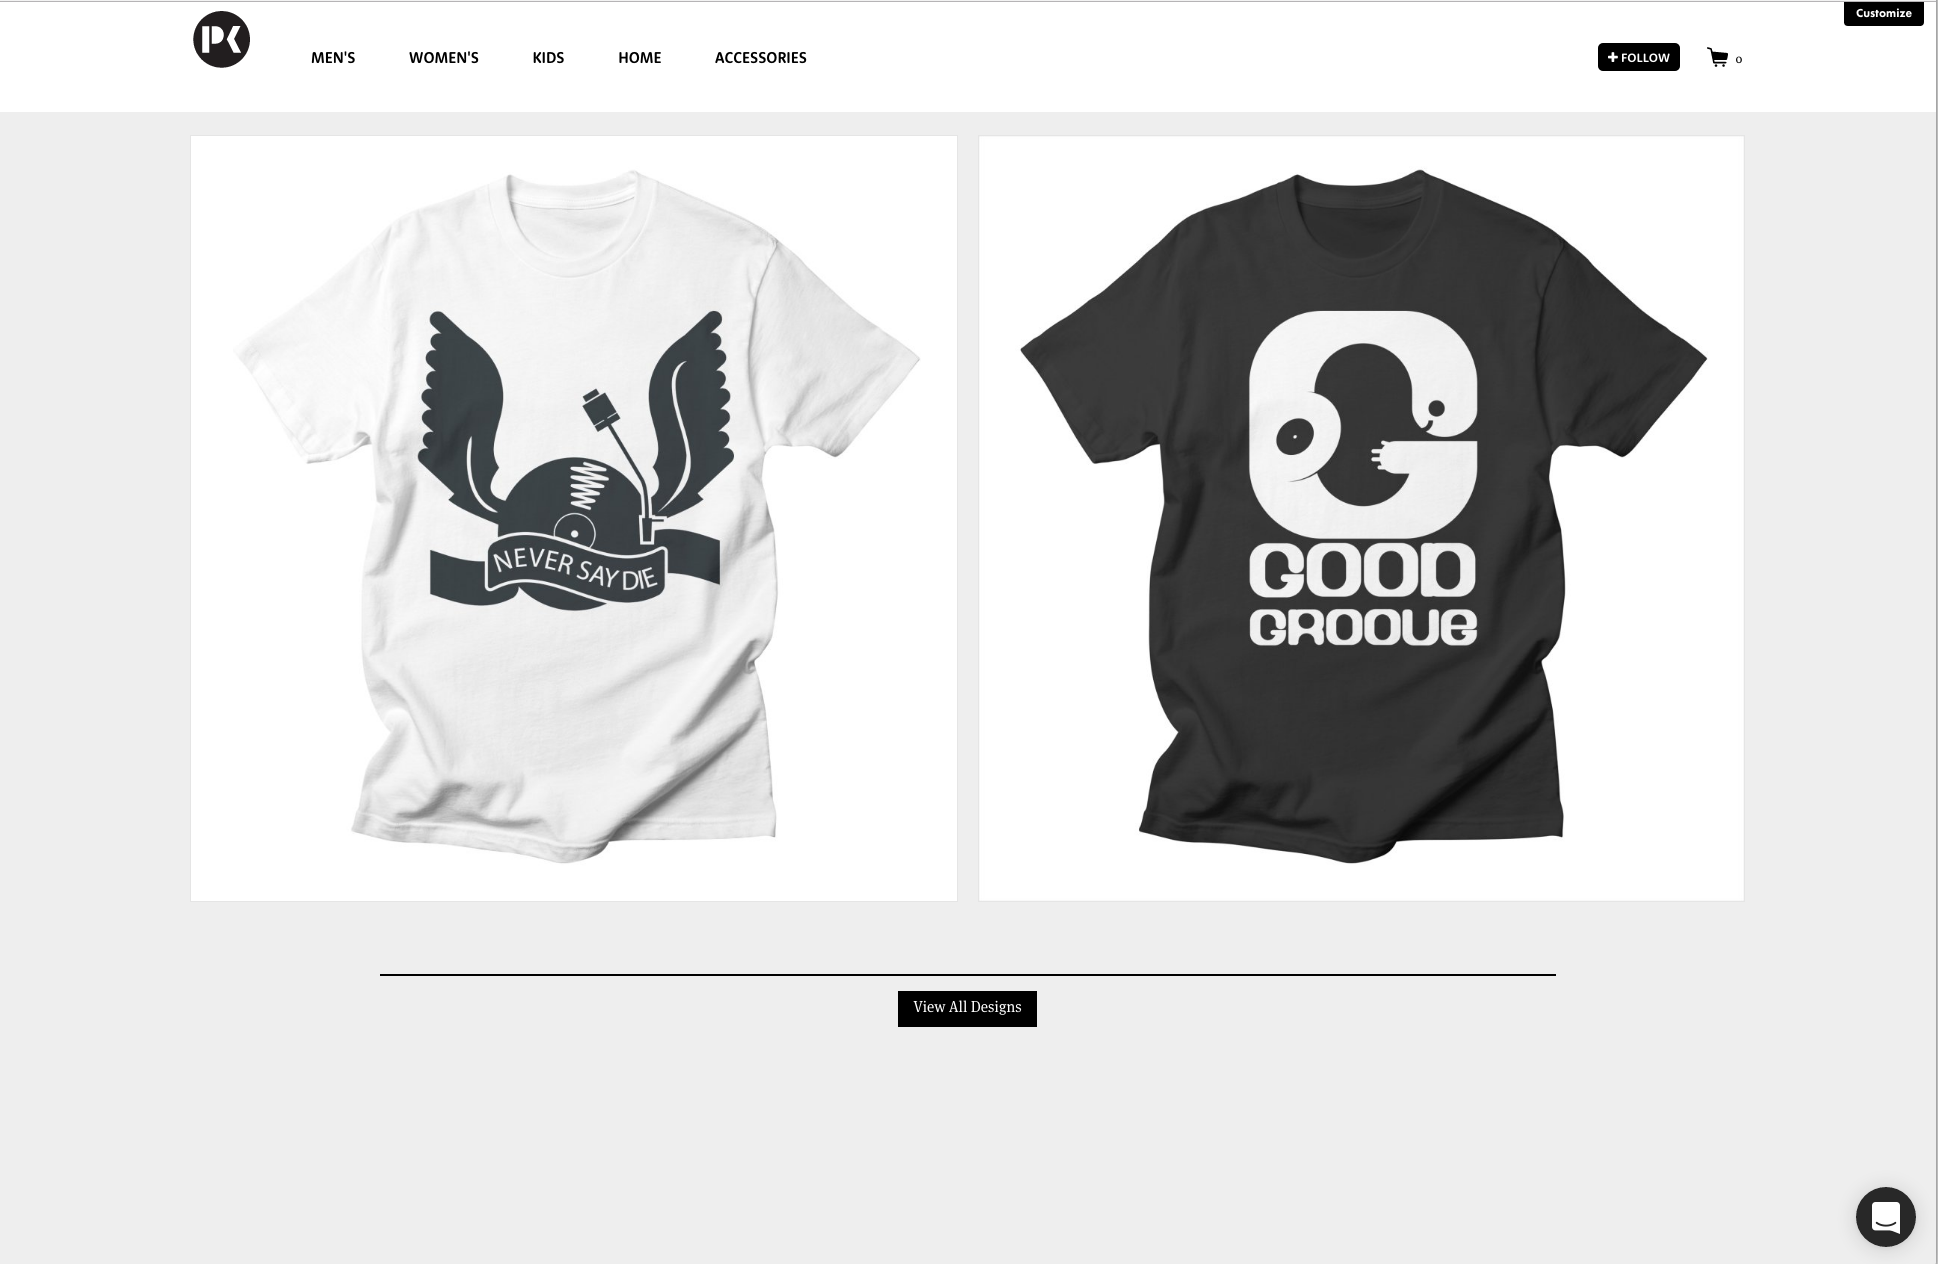 Check out the first designs online now.